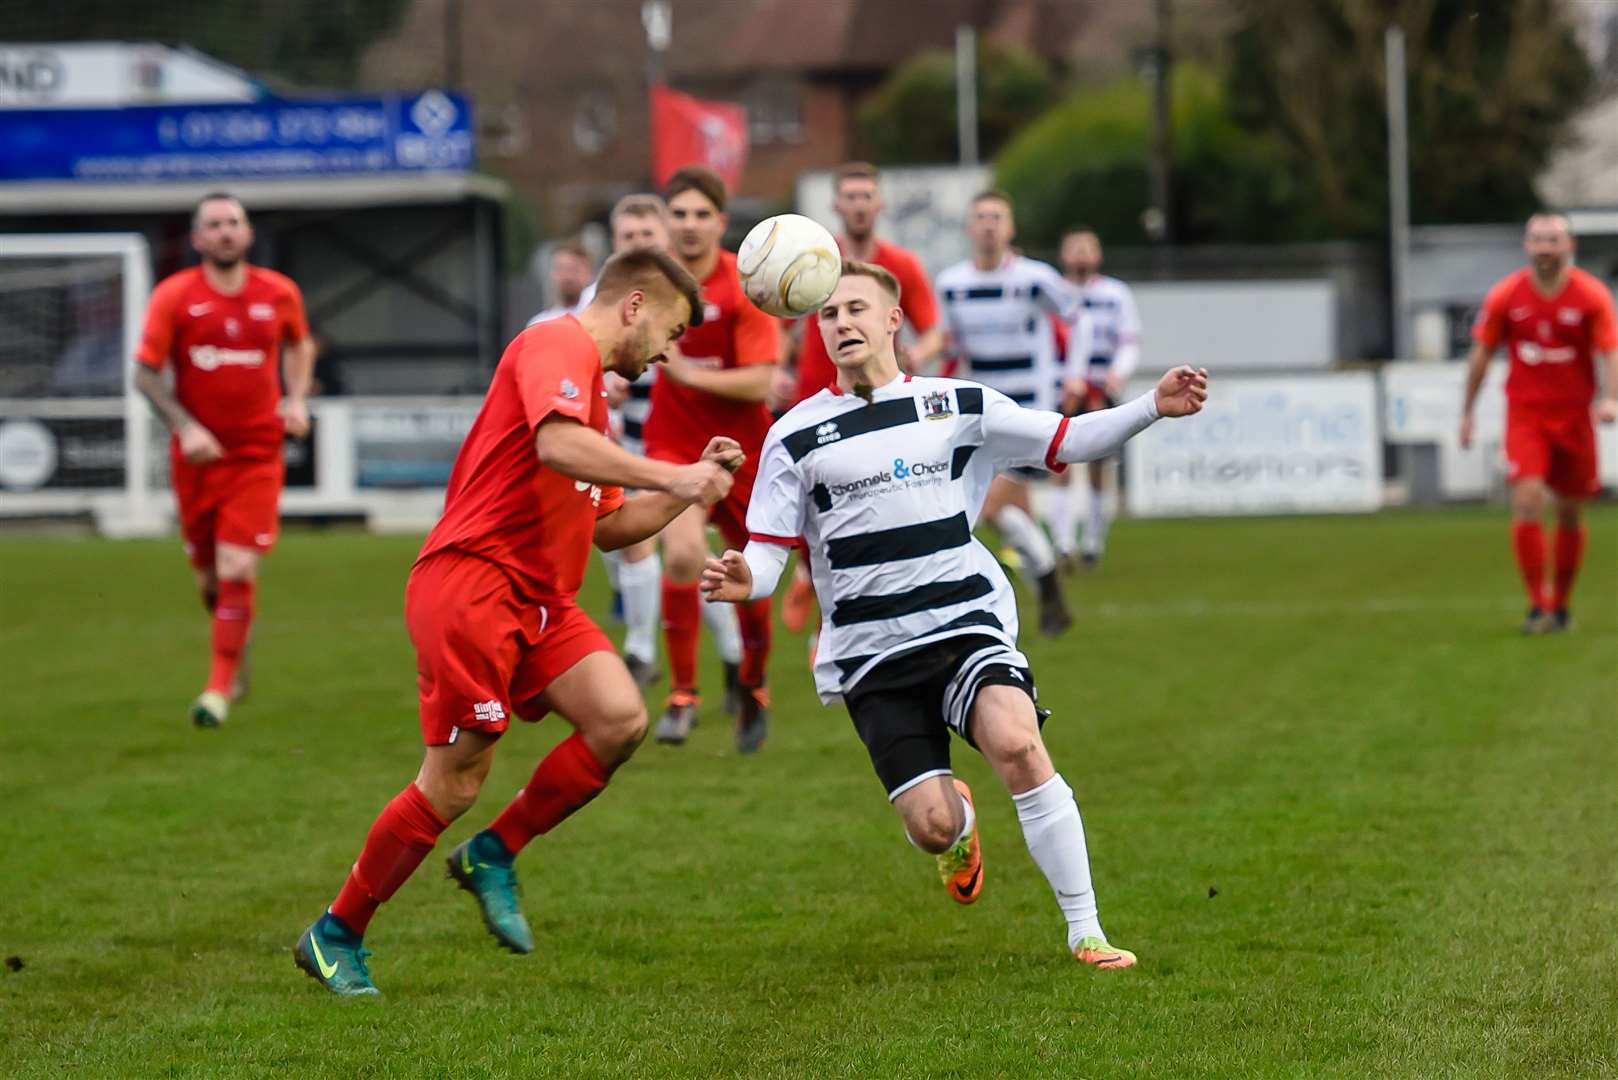 Deal Town are up against Binfield again in the FA Vase Picture: Alan Langley